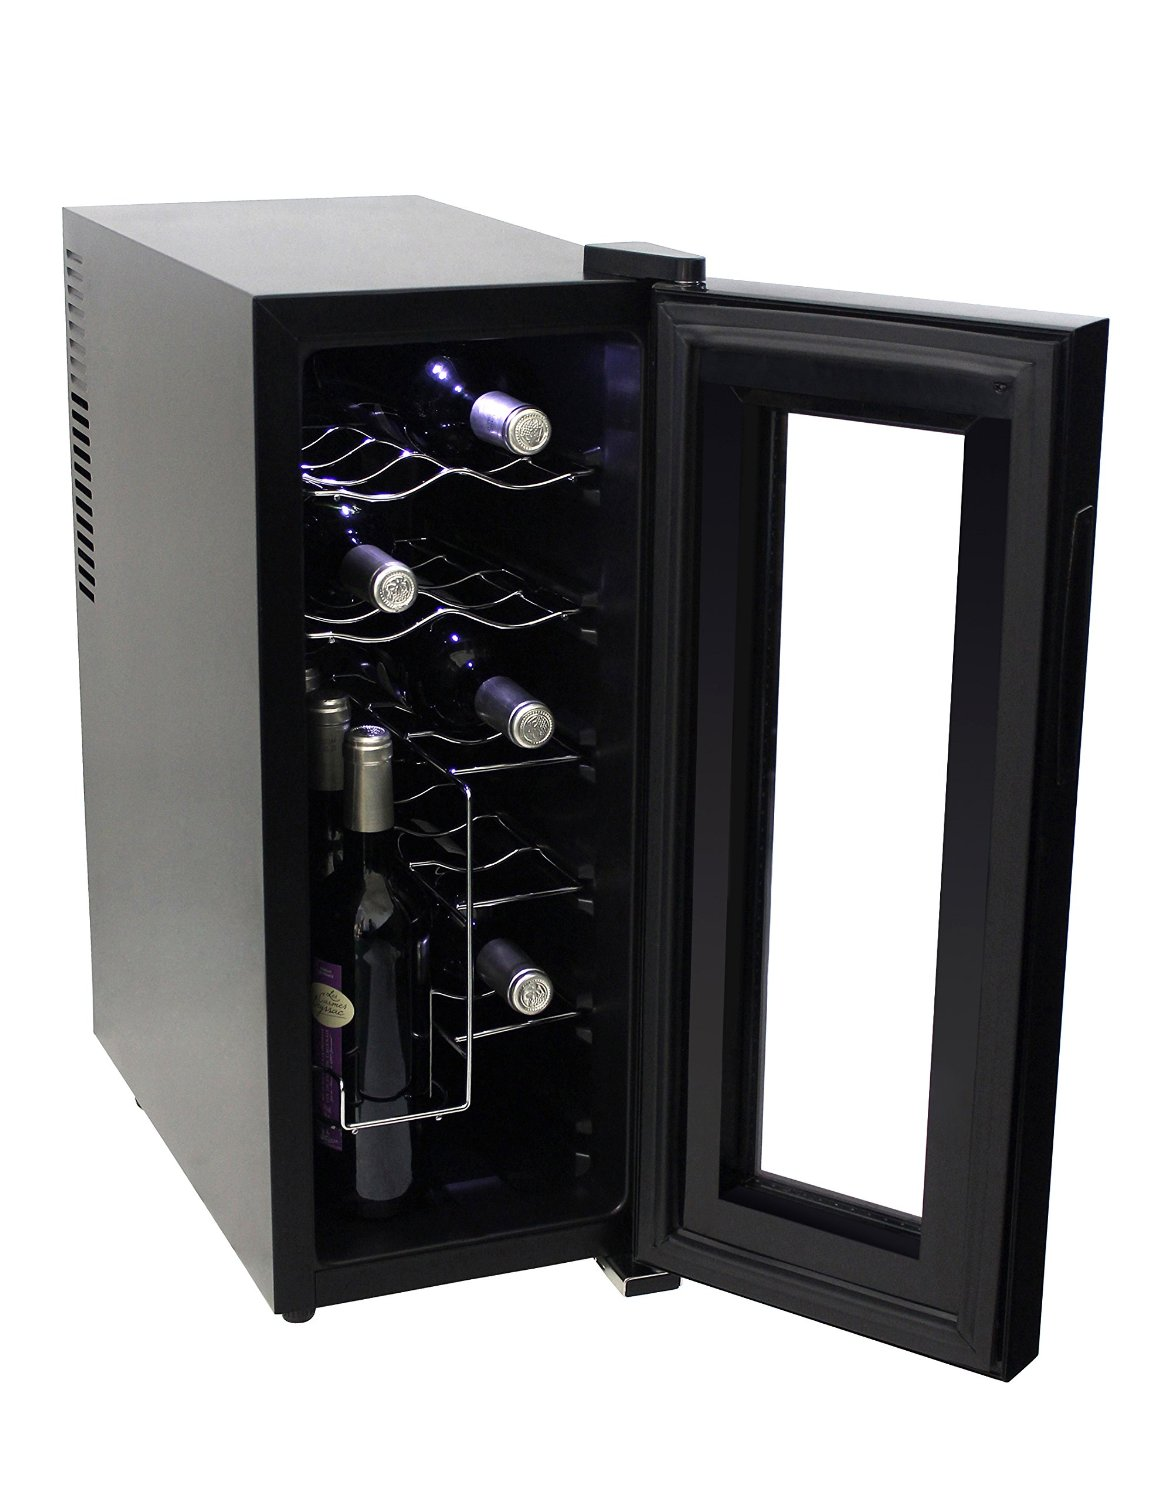 Homeimage Hi 12c Thermo Electric Wine Cooler 12